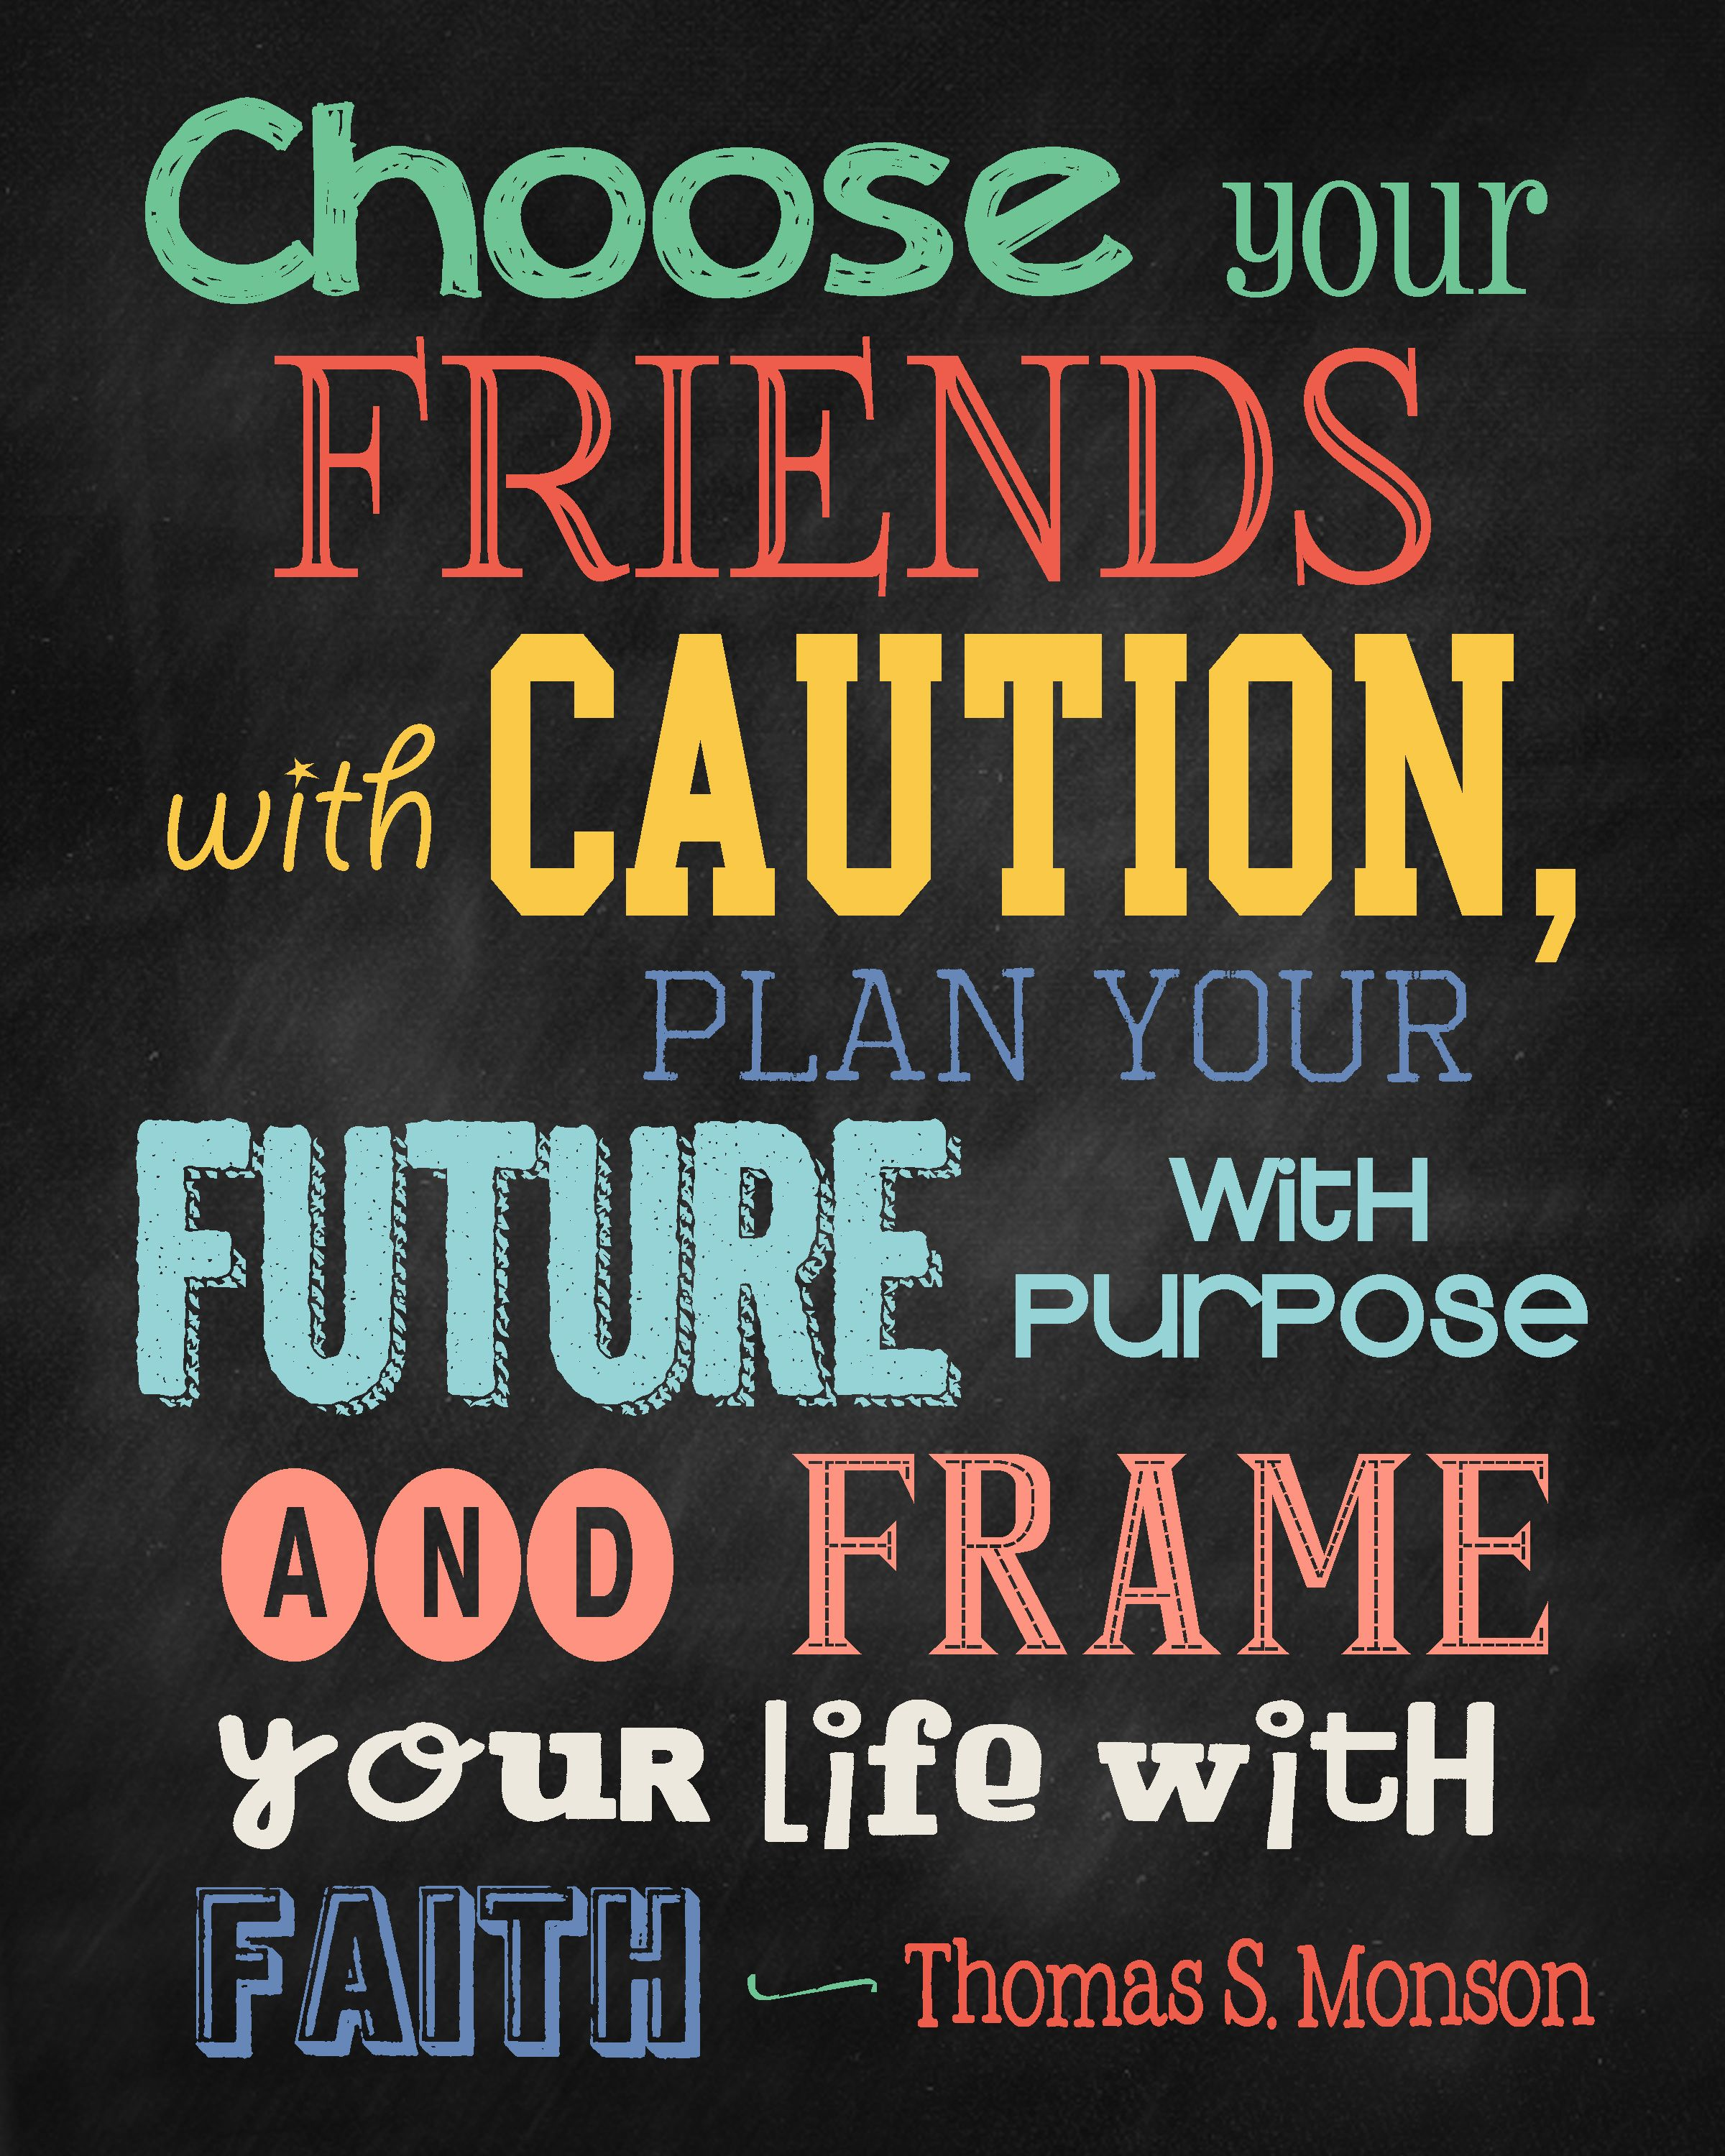 Choose your friends with caution plan your future with purpose and frame your life